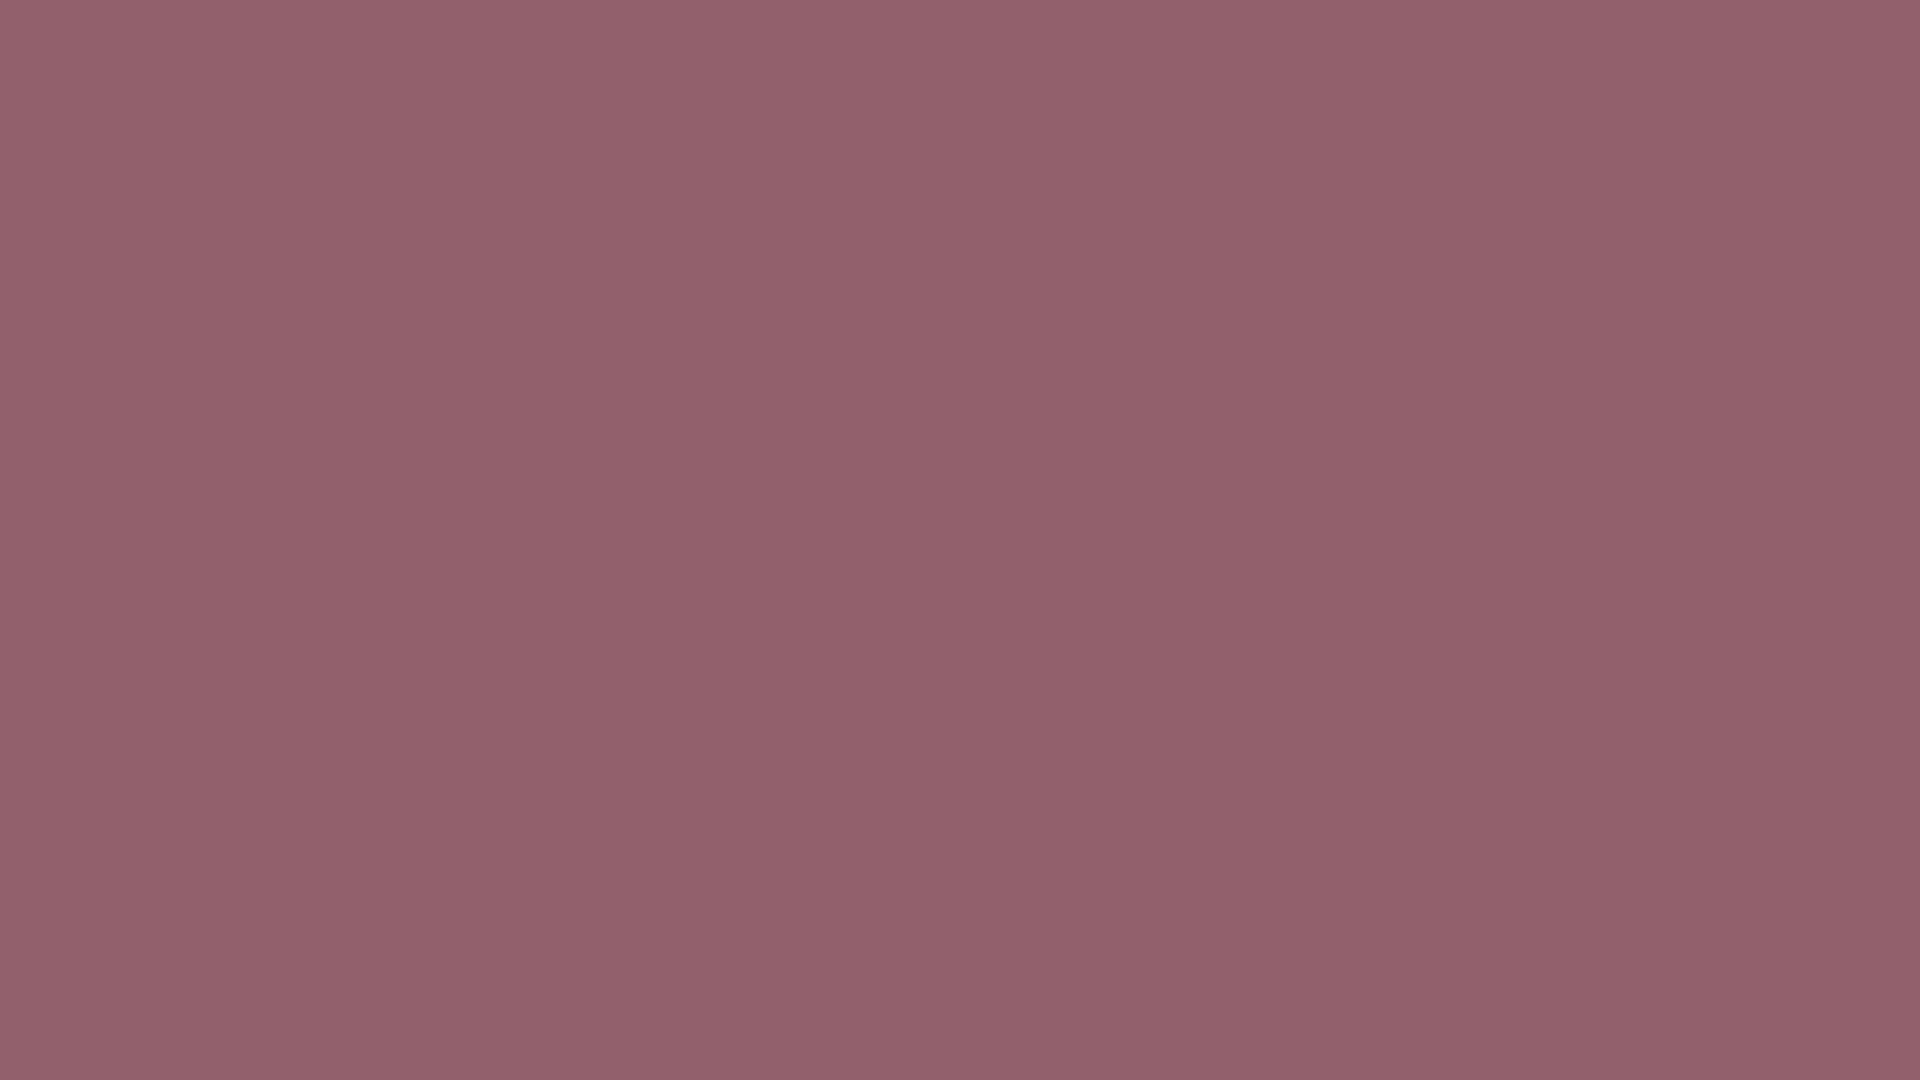 1920x1080 Mauve Taupe Solid Color Background